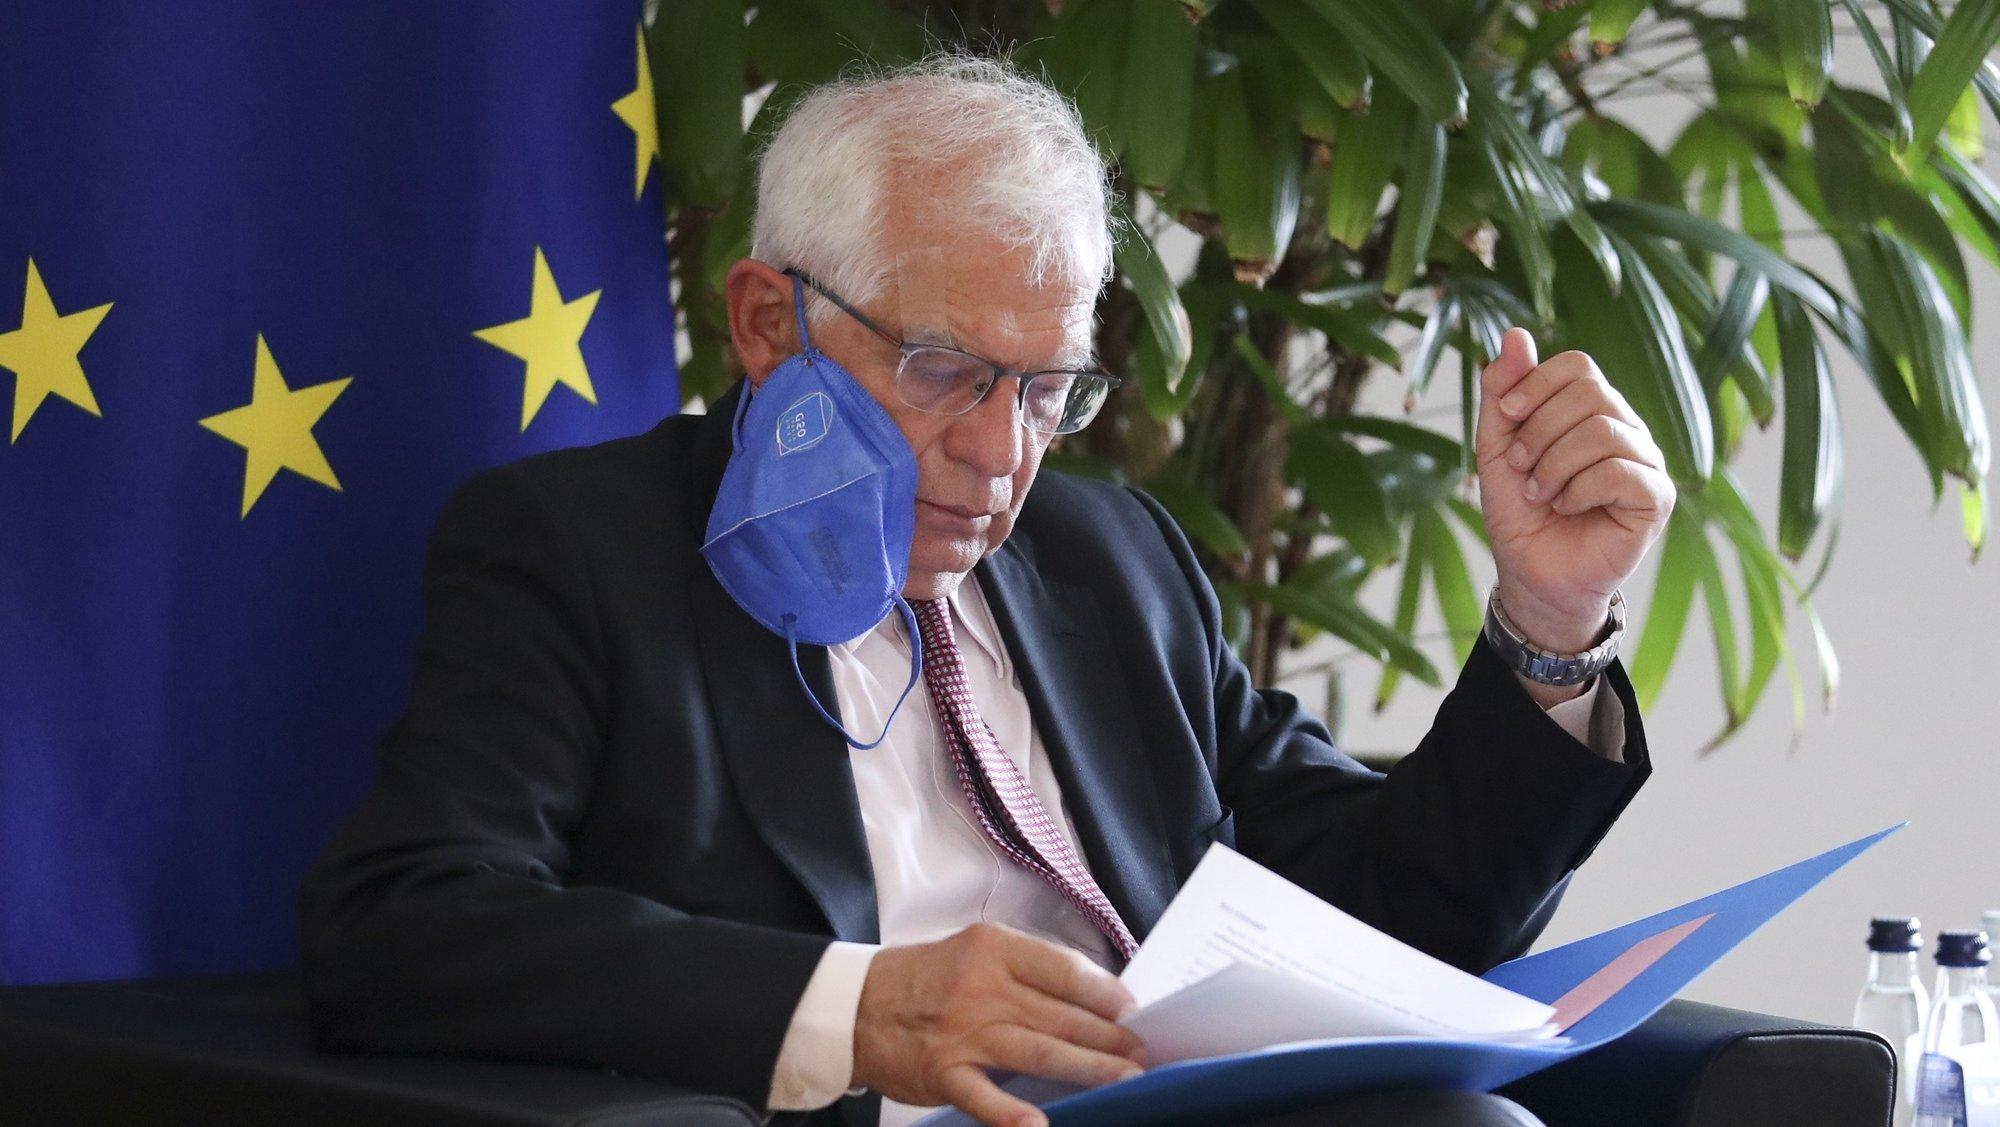 epa09341645 European Union foreign policy chief Josep Borrell sits down for a meeting with Zoran Tegeltija, Chairman of the Council of Ministers of Bosnia and Herzegovina, in Brussels, Belgium, 13 July 2021.  EPA/PASCAL ROSSIGNOL / POOL